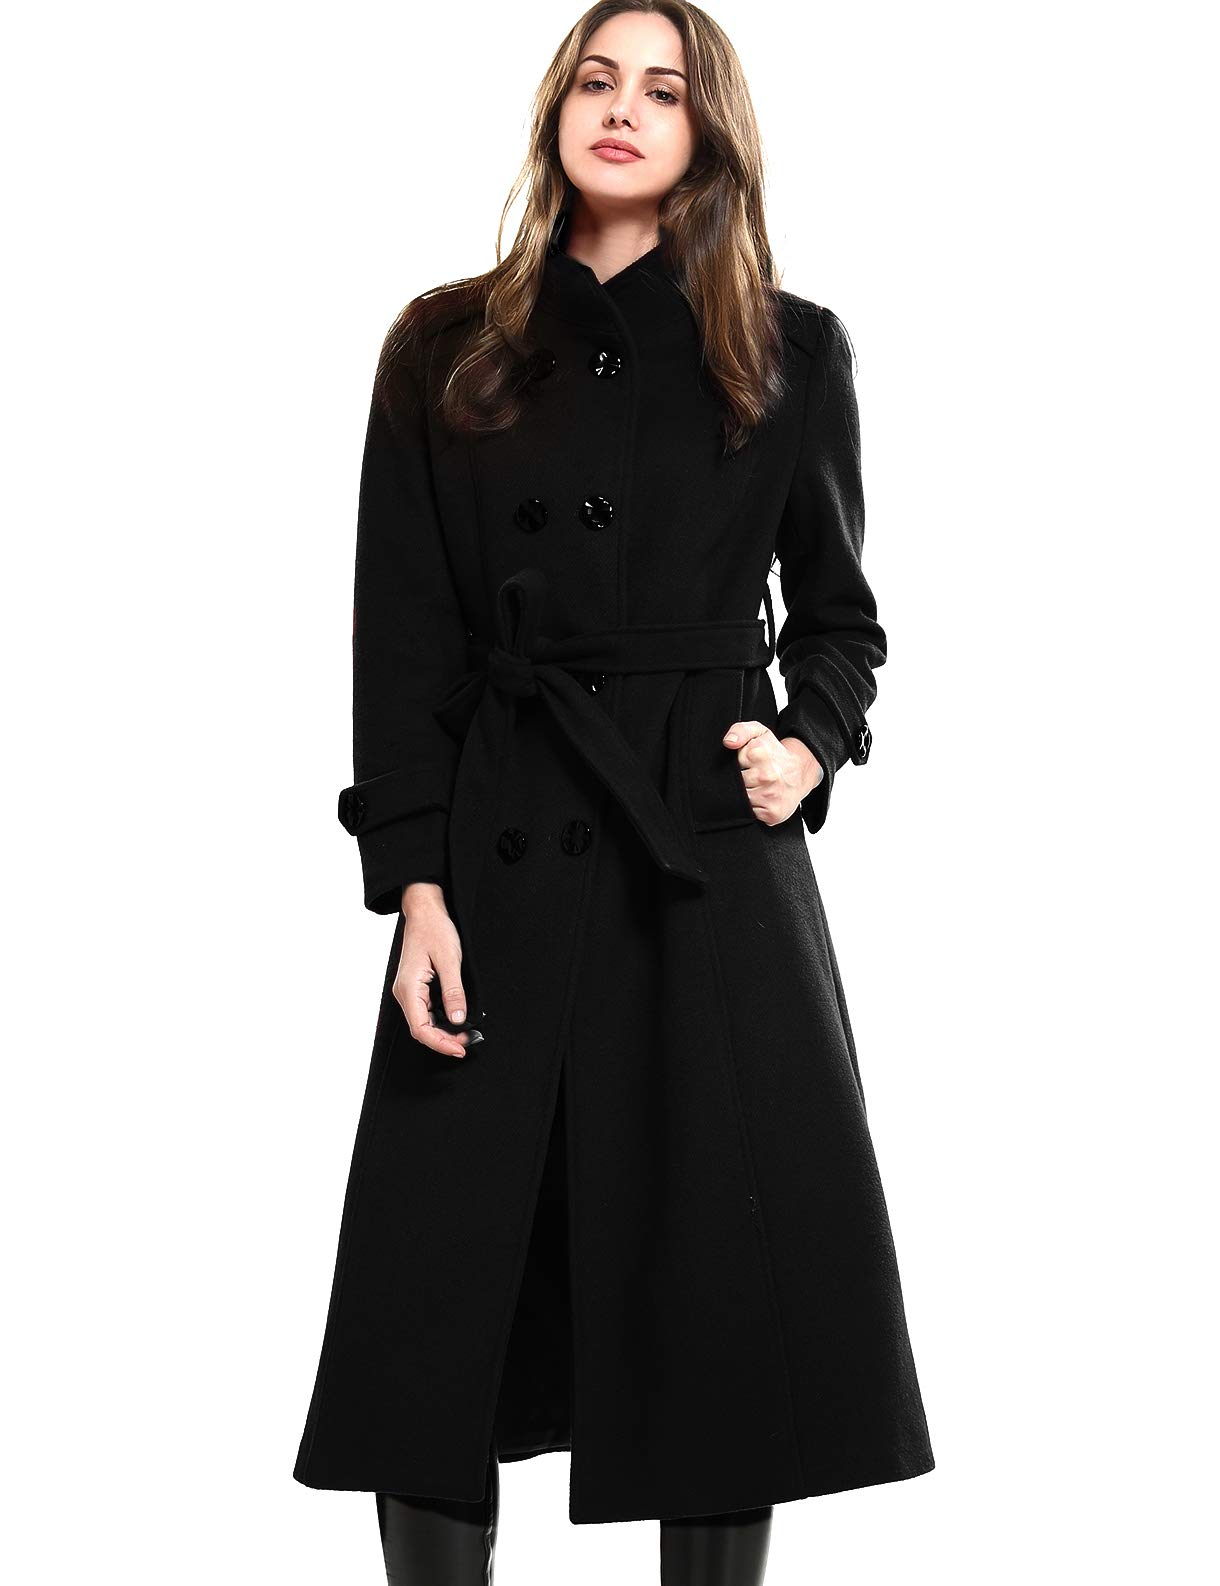 Escalier Women's Wool Trench Coat Double-Breasted Jacket with Belts Black S